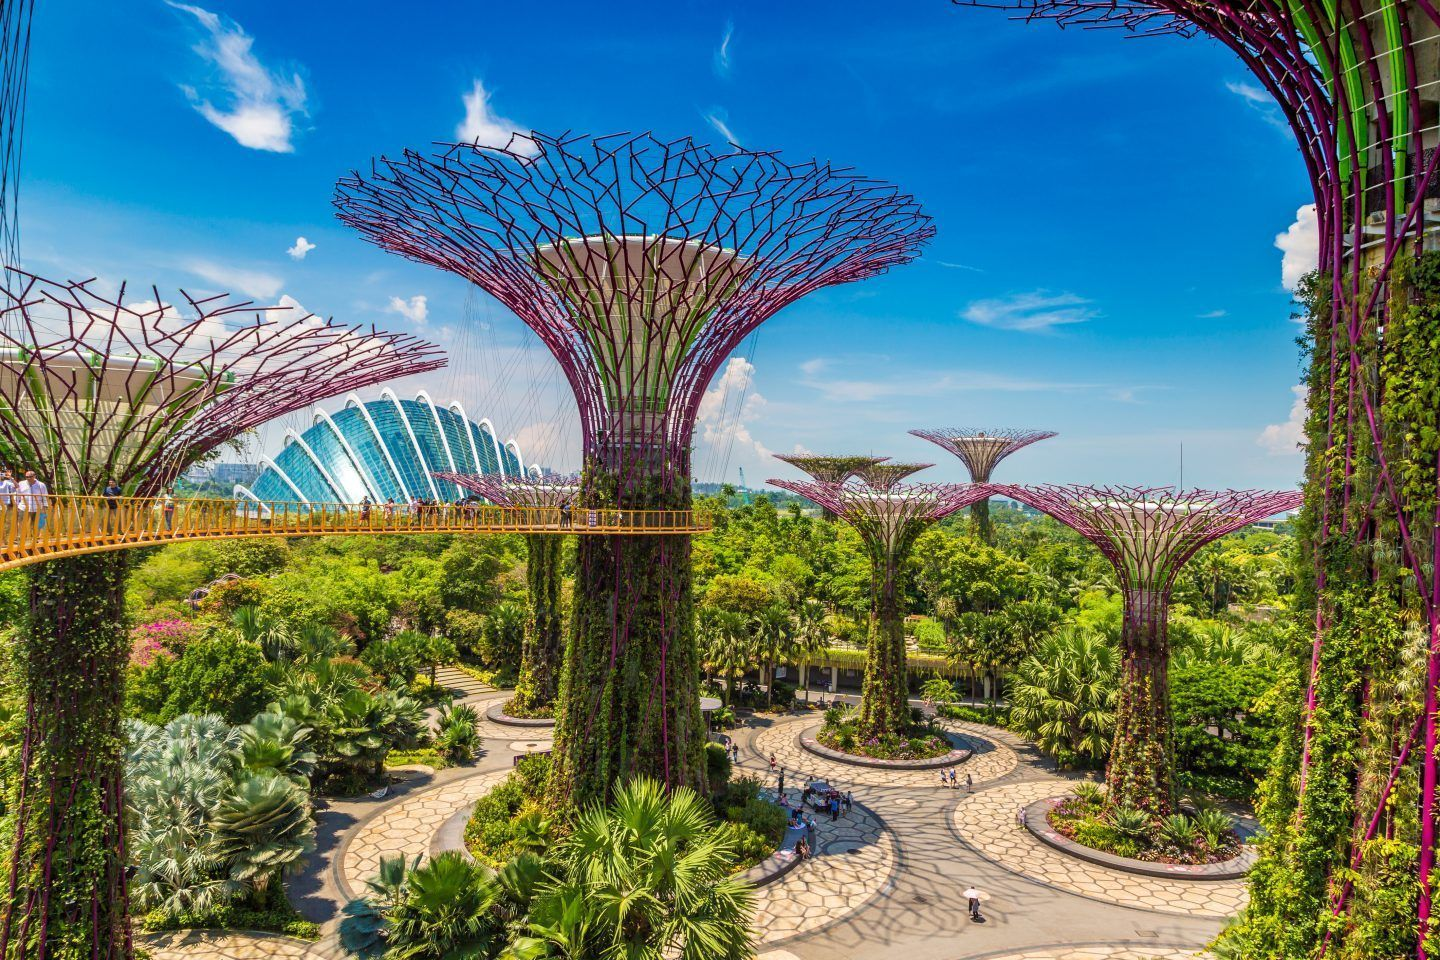 eb2c8ea2389188d7b5cd0270ecd9afaf - Fun Facts About Gardens By The Bay